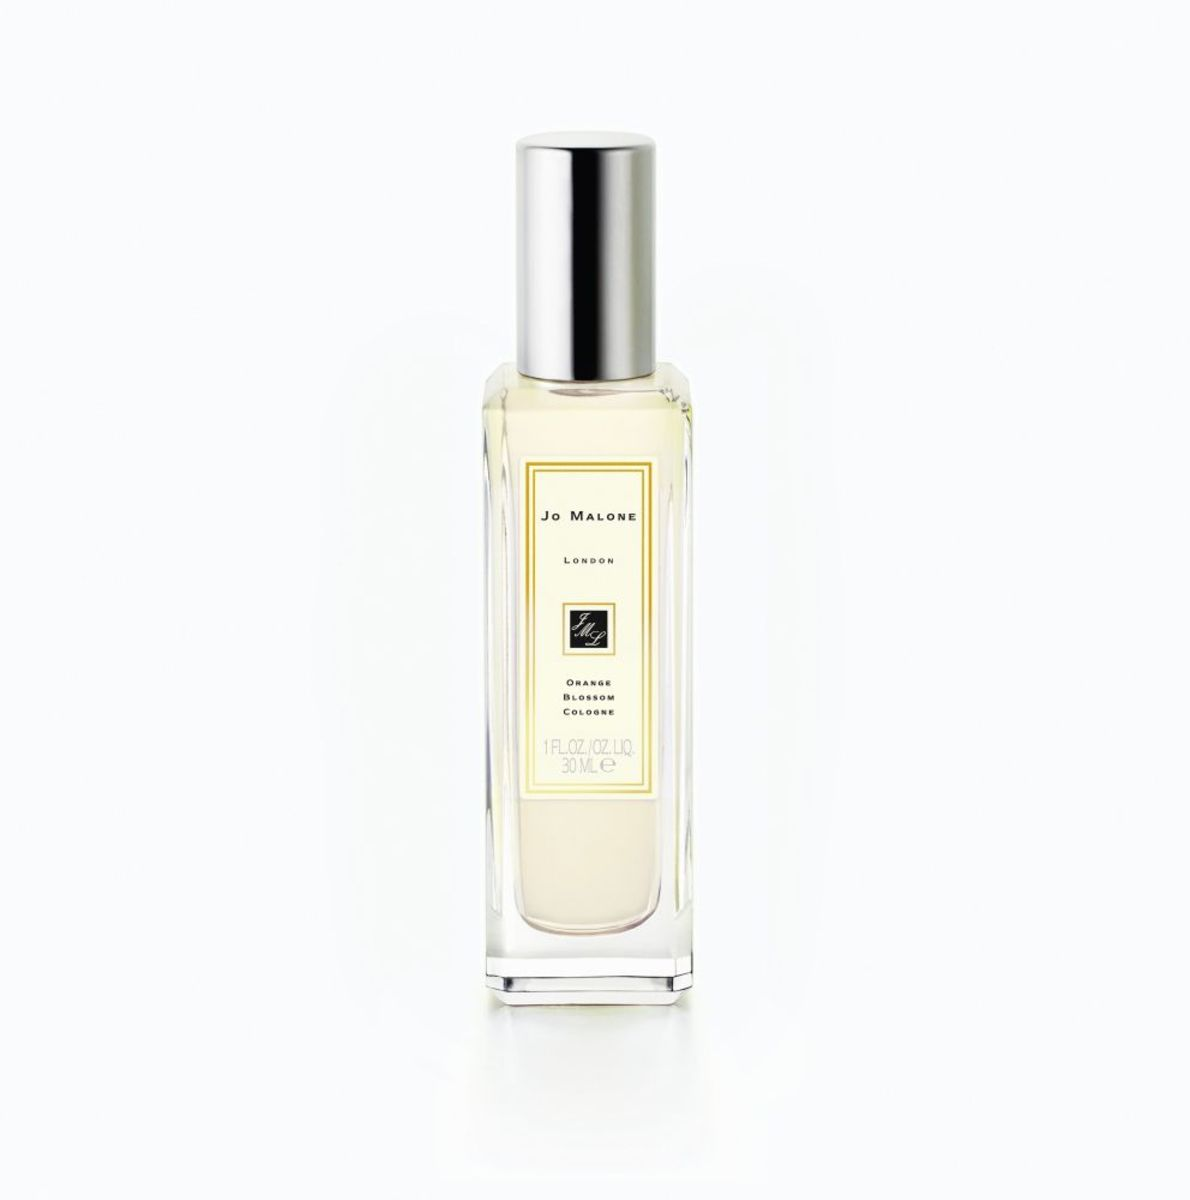 Купить Одеколон Jo Malone, Jo Malone Orange Blossom 30ml, Великобритания